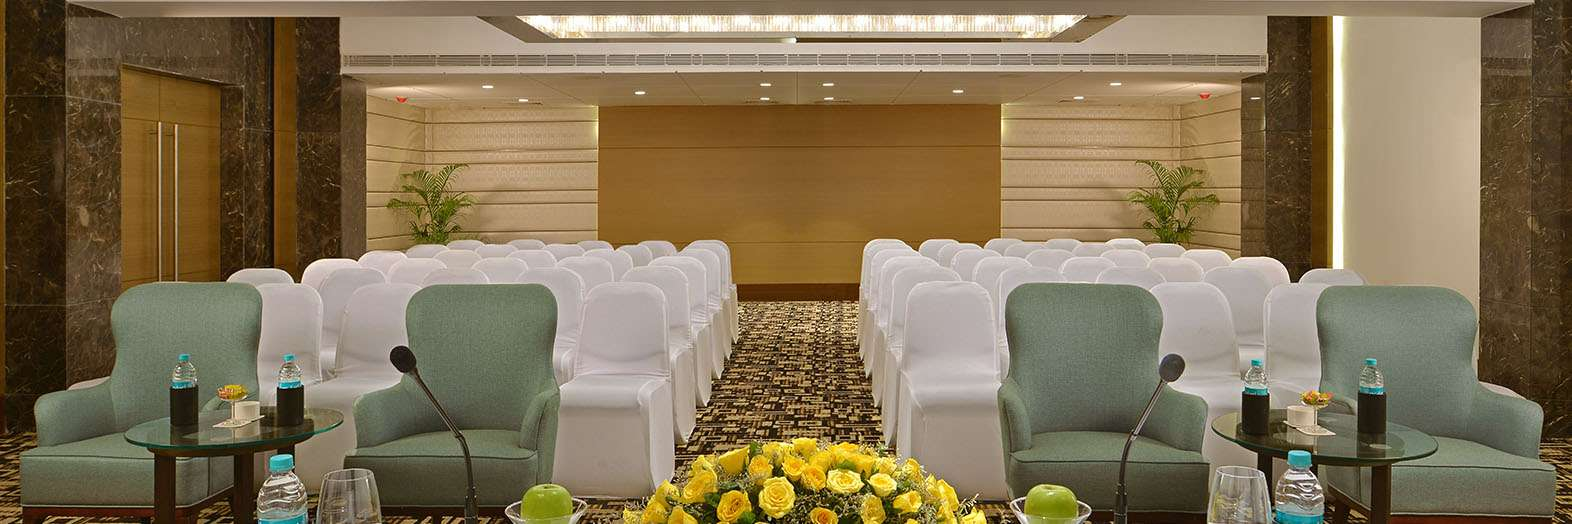 Meeting Venues in Bhubaneswar